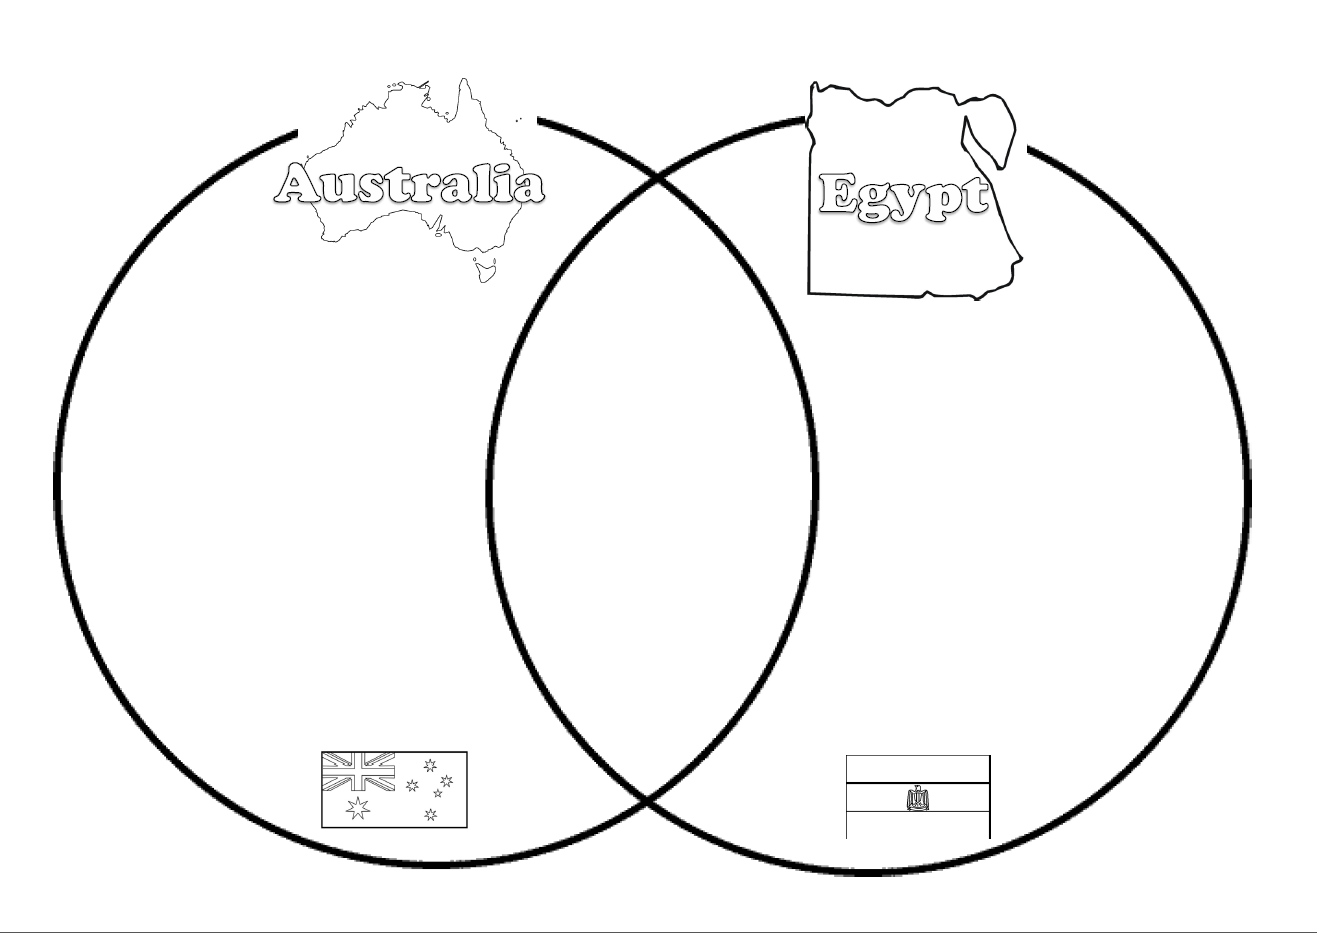 compare and contrast australia with africa and south america